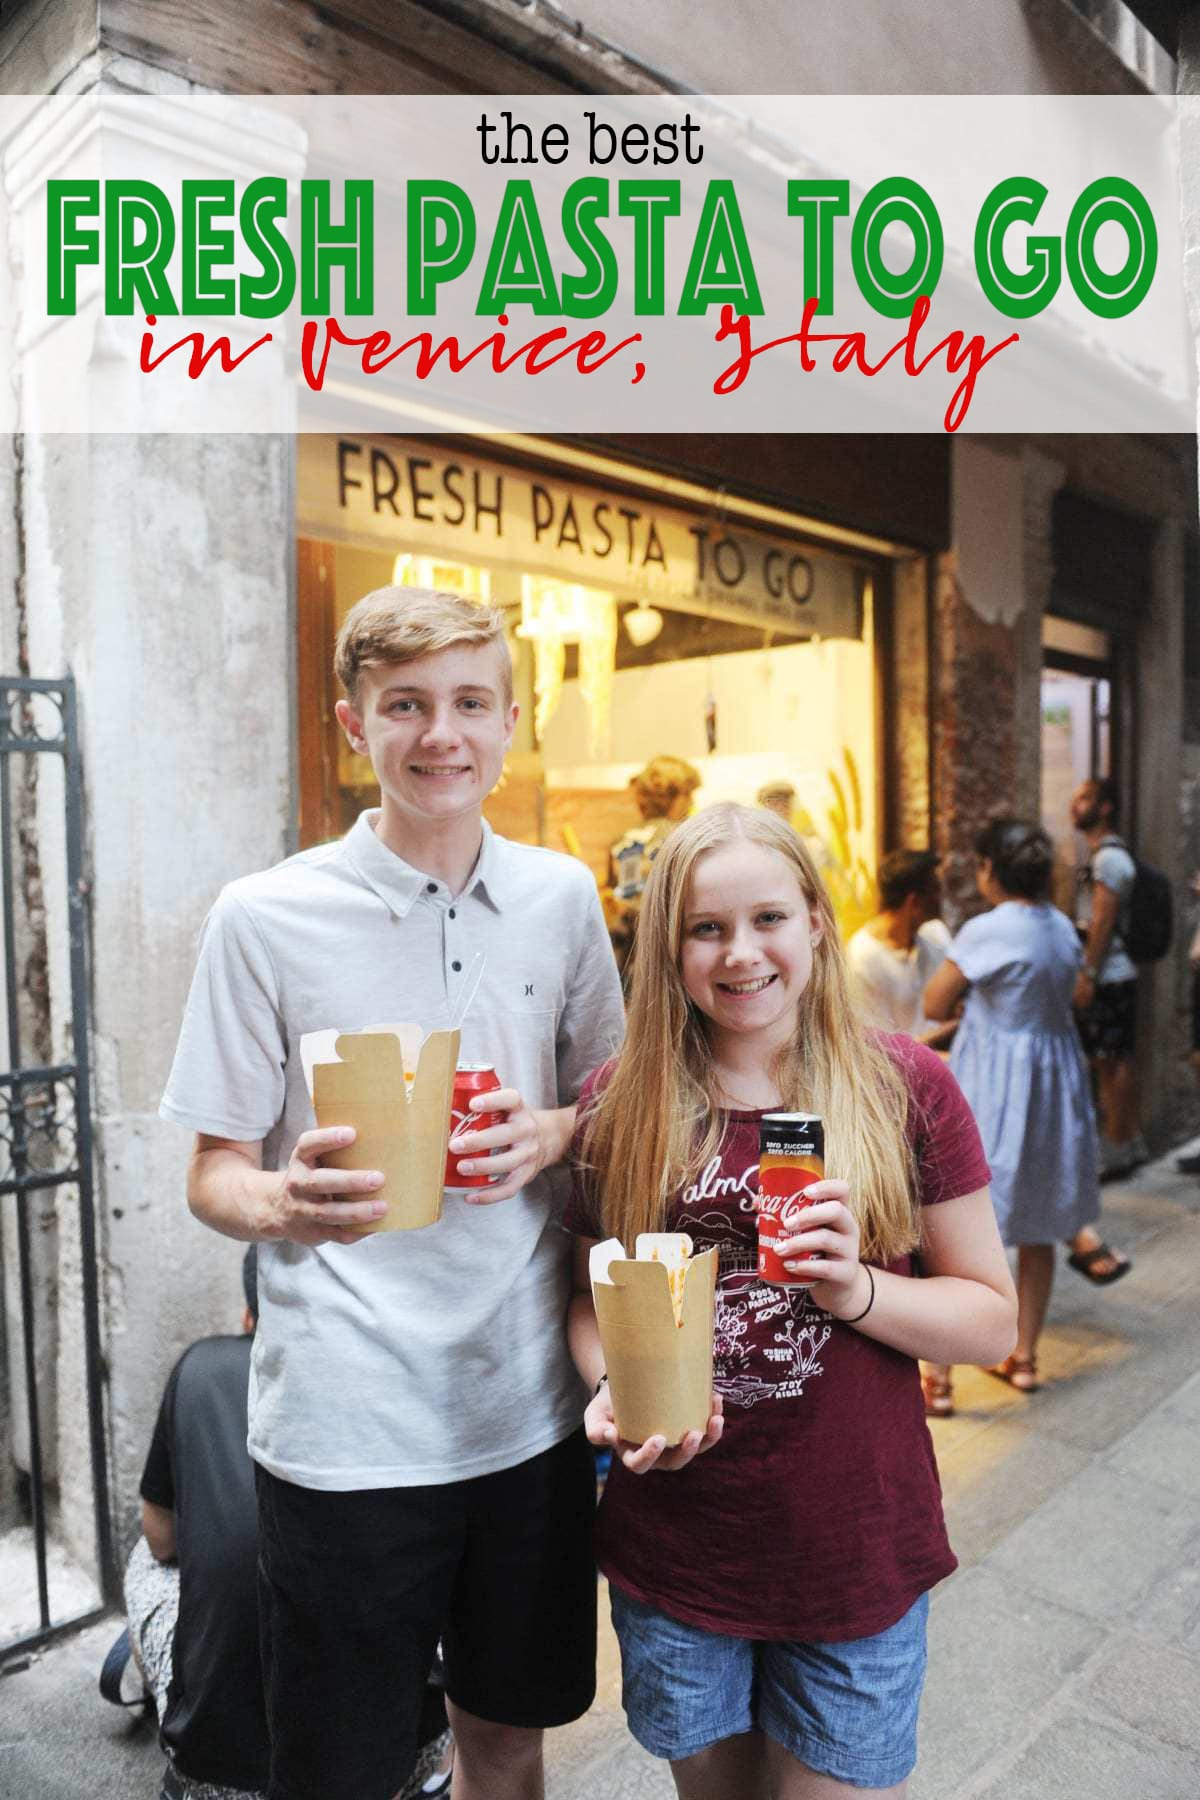 Fresh pasta to go venice italy with text